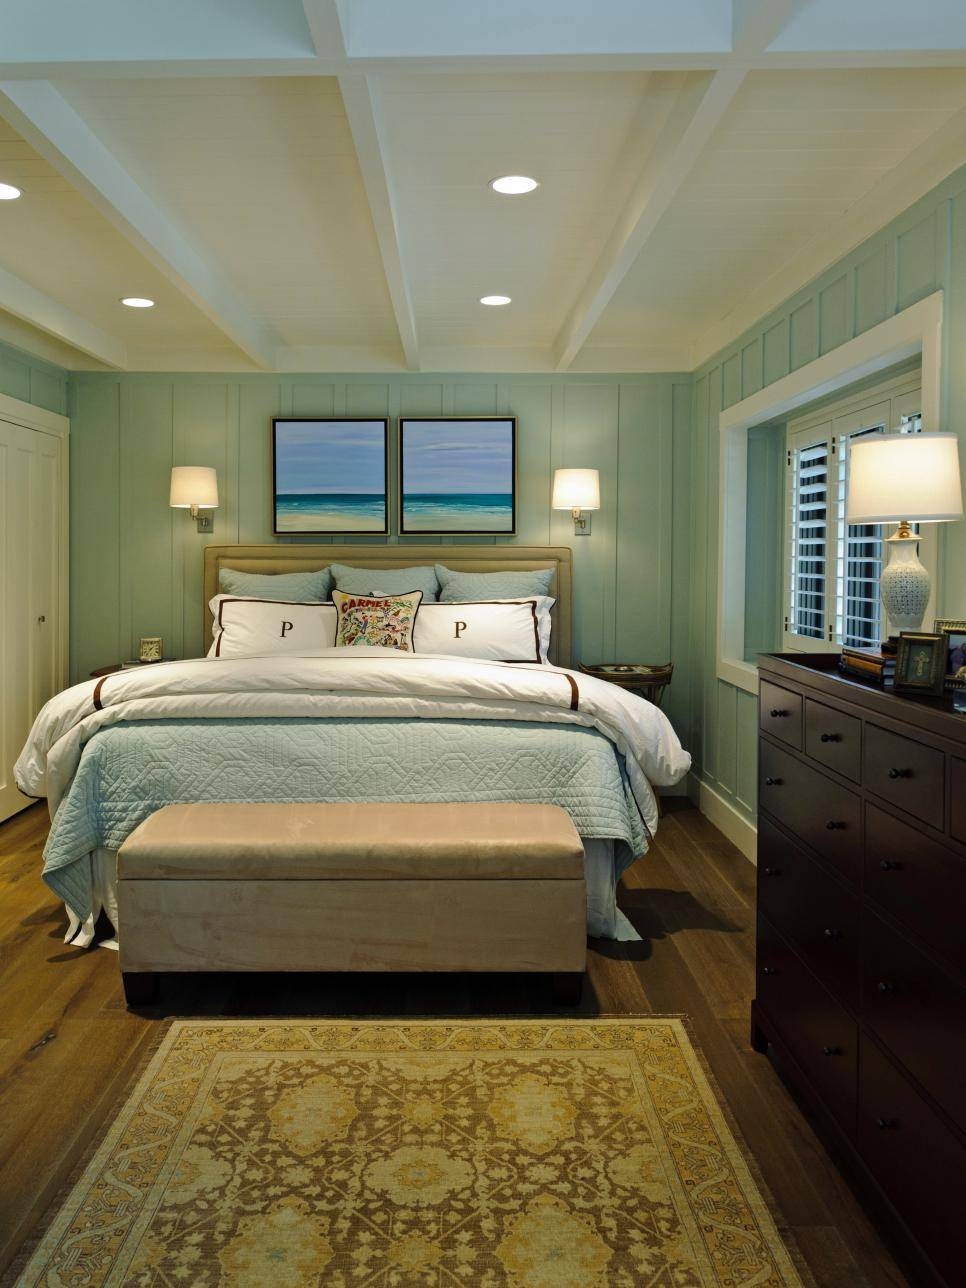 Coastal Inspired Bedrooms | Hgtv Pertaining To Current Beach Wall Art For Bedroom (View 18 of 20)